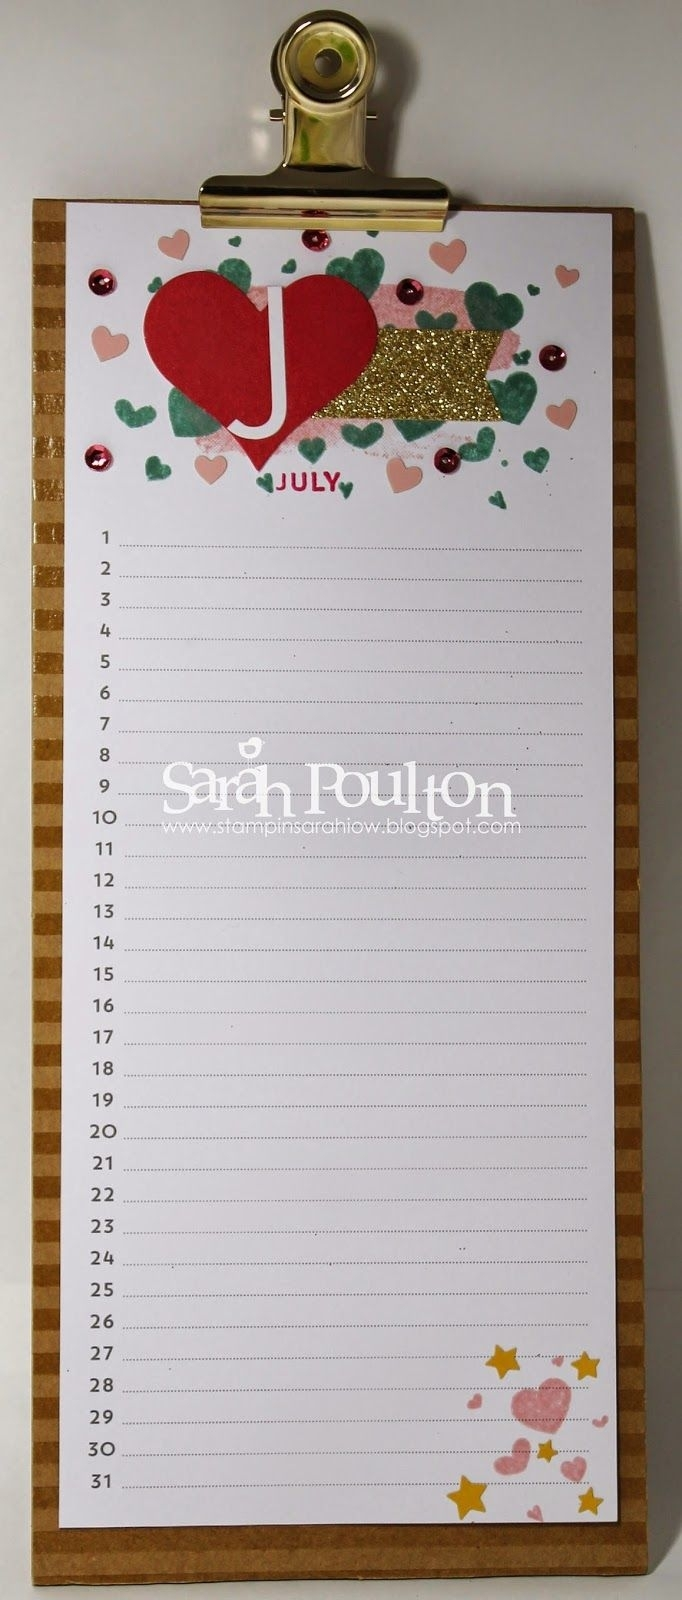 Stampin' Sarah!: Perpetual Birthday Calendar Kit Part 2 Created with Summer Picture For Birthday Calendars